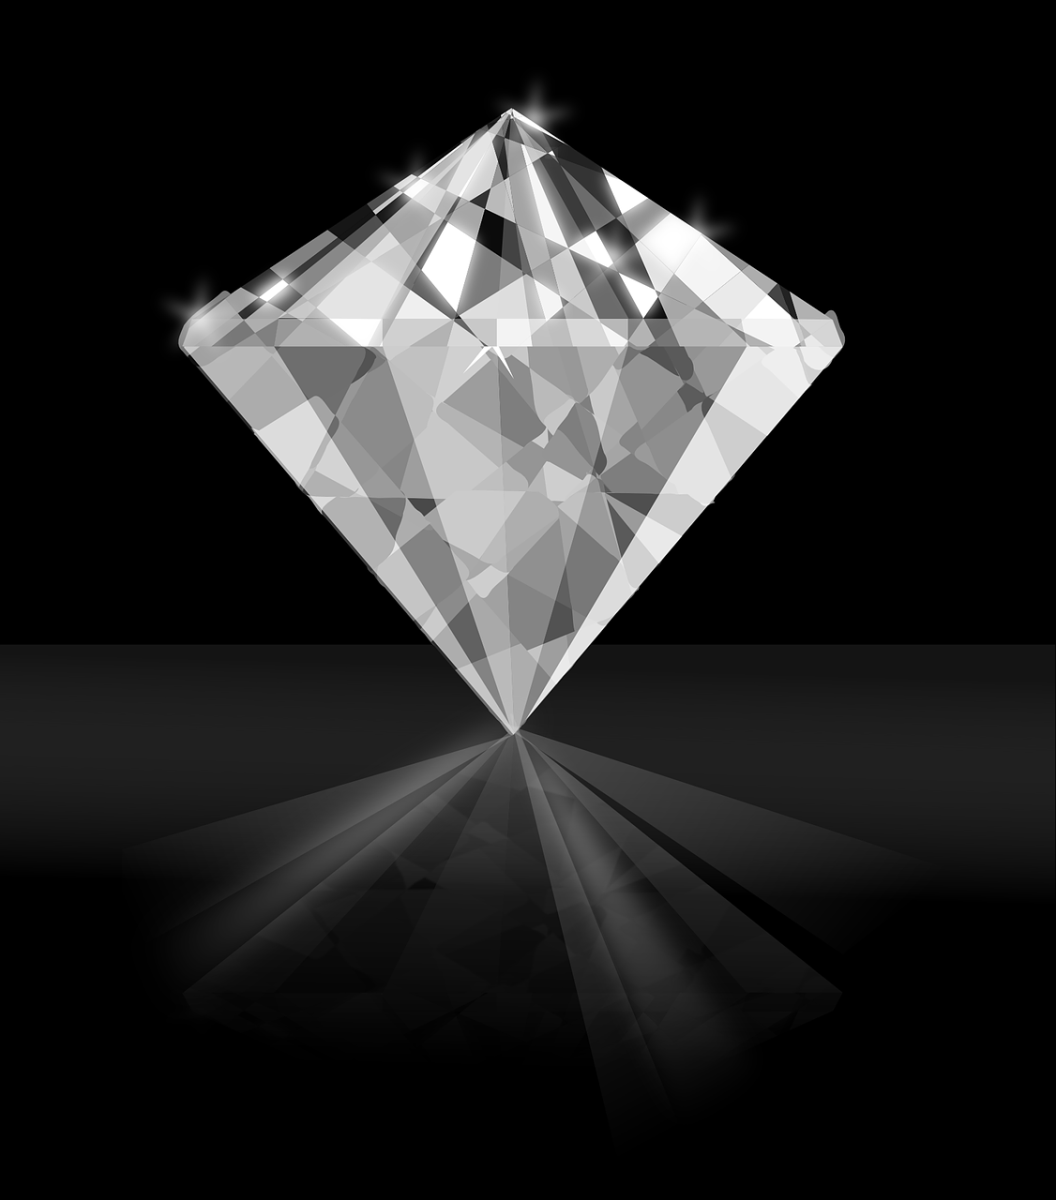 Chronically Ill and Finding Diamonds